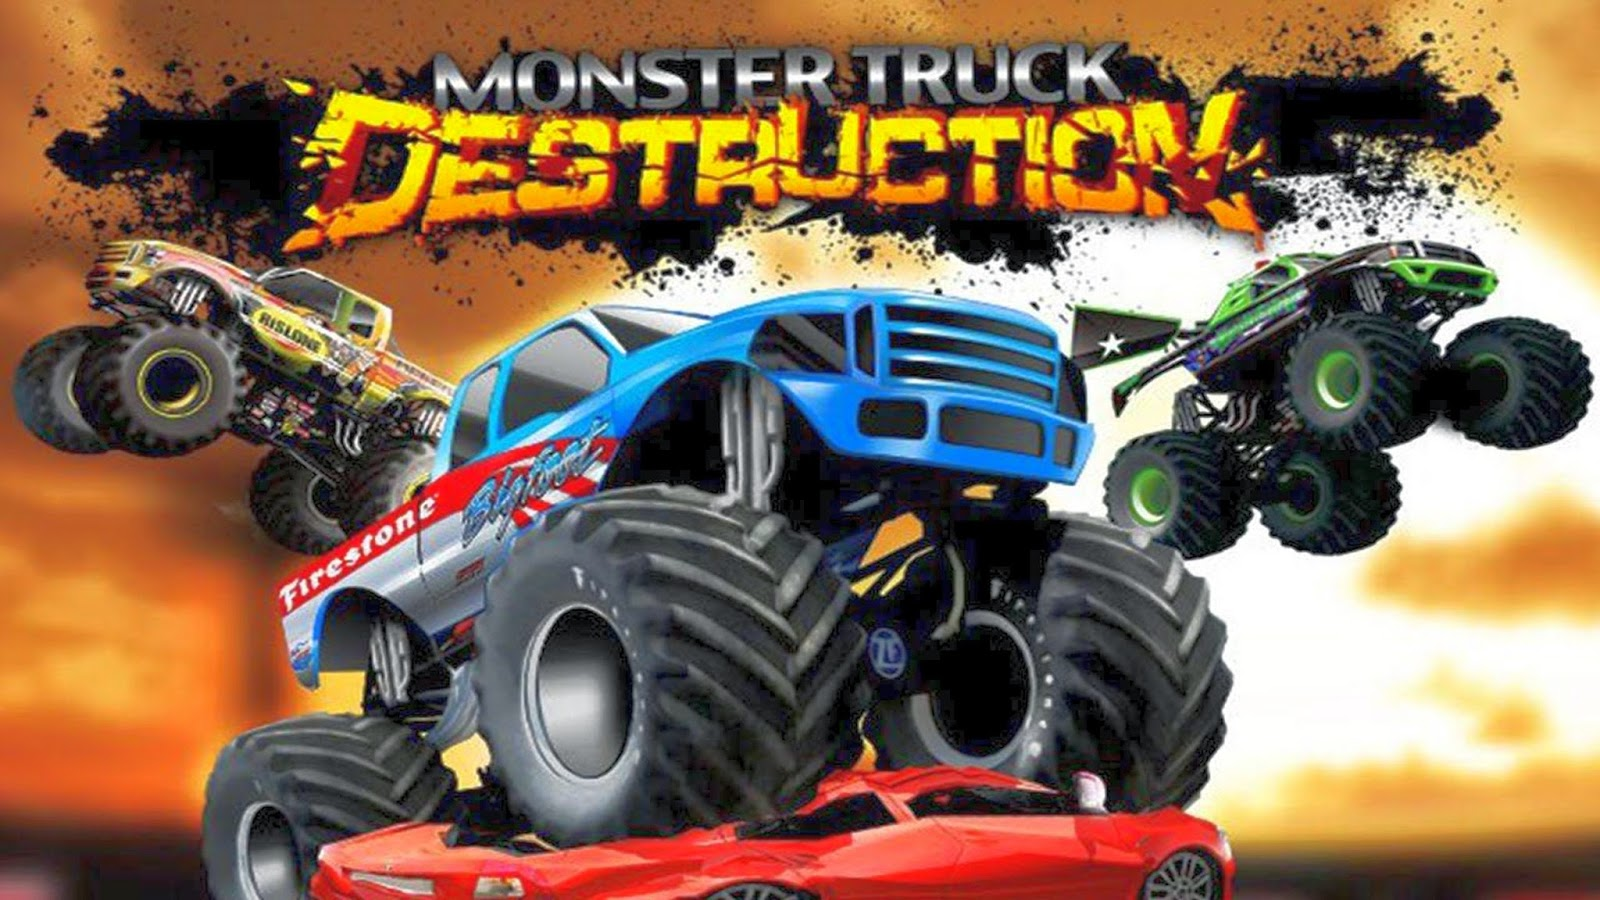 WALLPAPER MONSTER TRUCK DESTRUCTION Gambar Kartun Lucu Dan